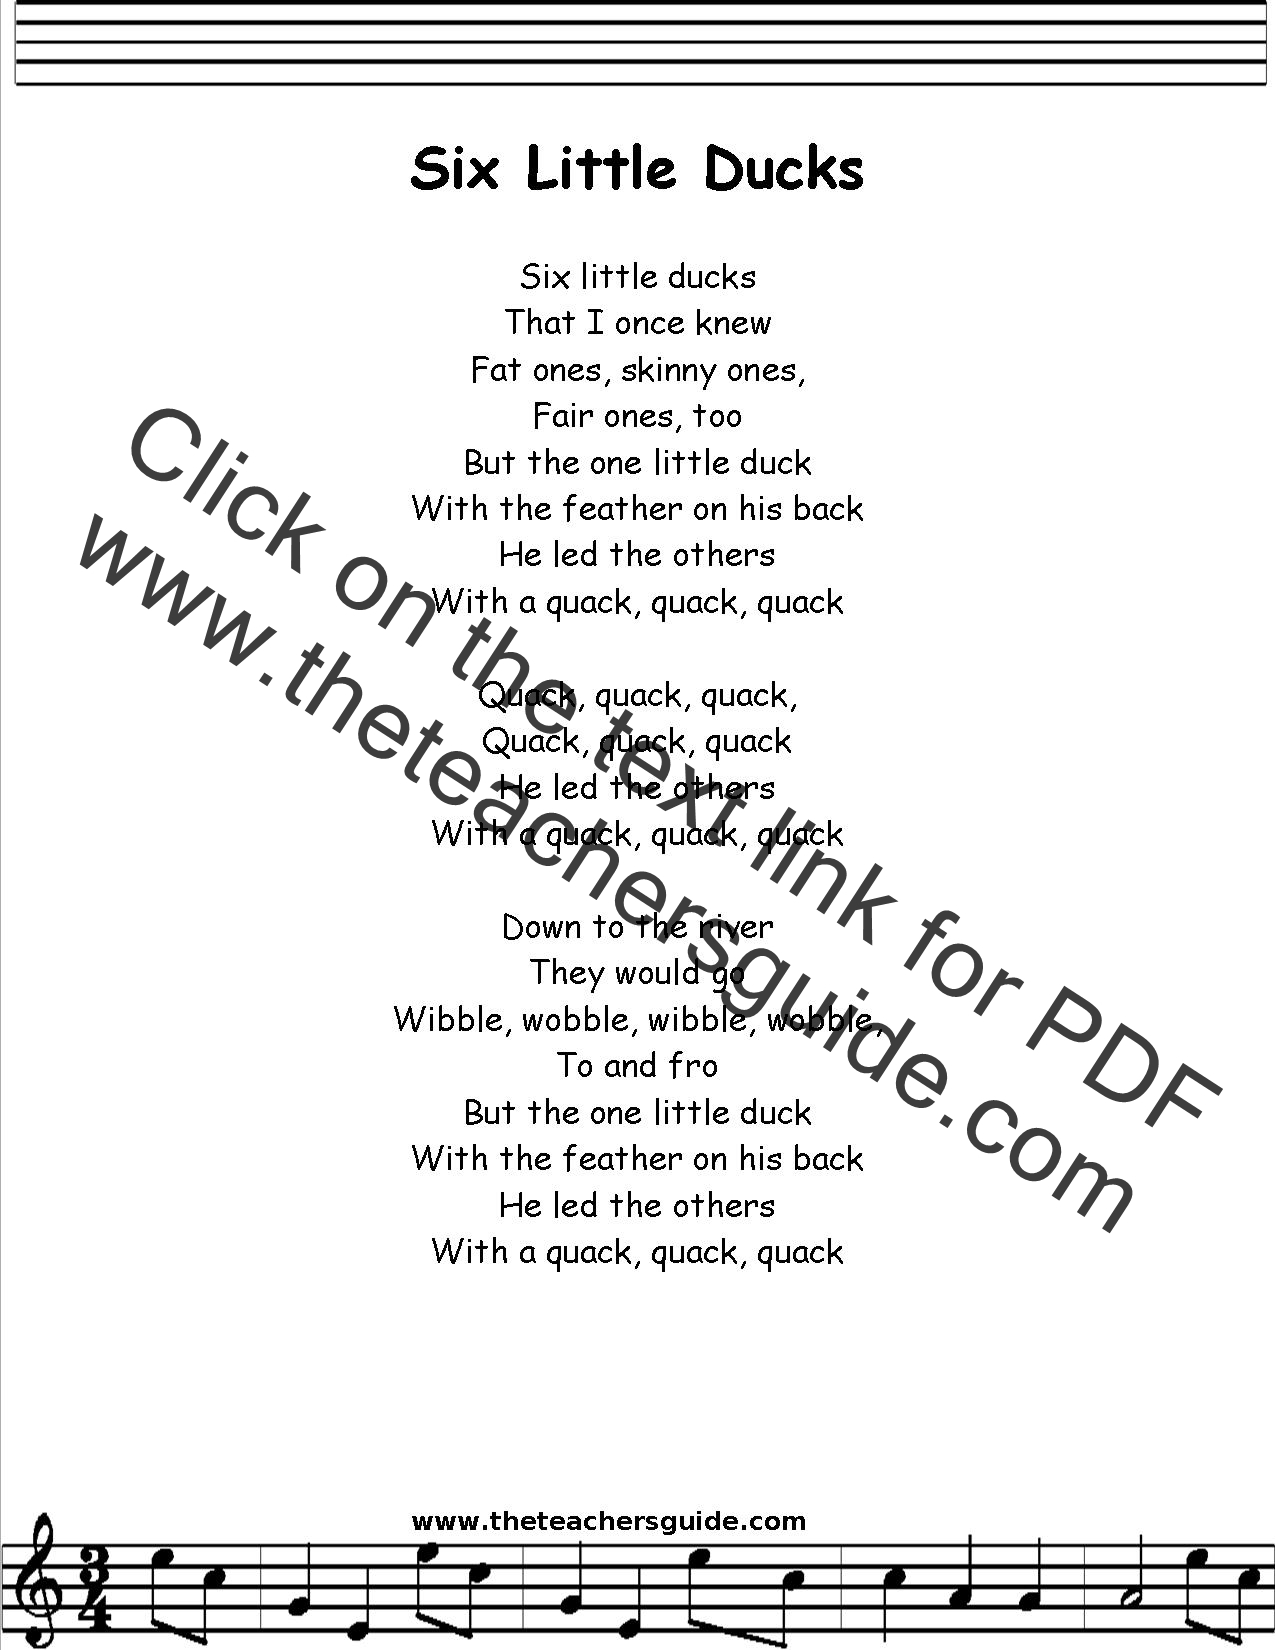 Six Little Ducks Lyrics Printout Midi And Video